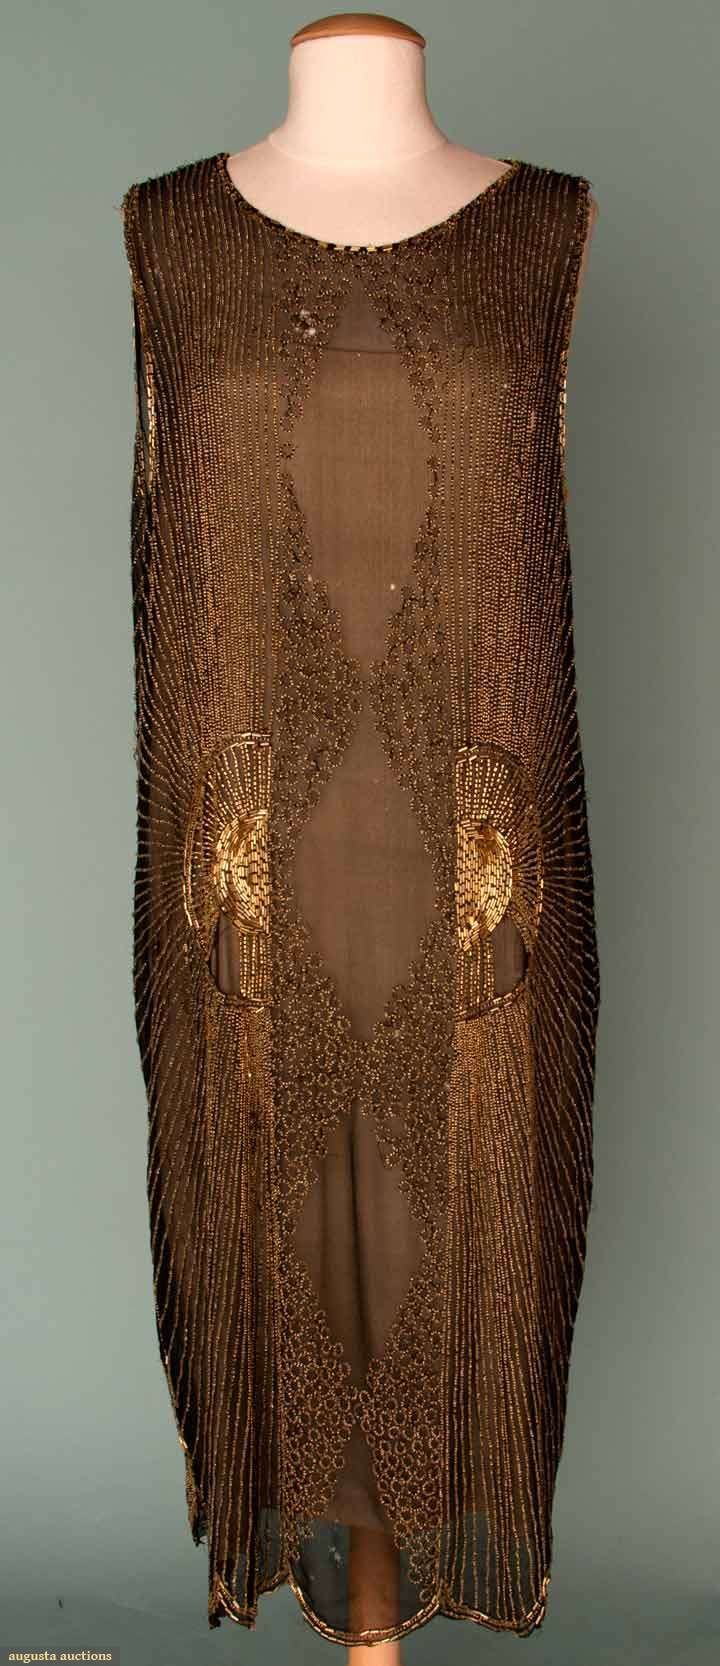 Gold Beaded Party Dress, Mid 1920s, Augusta Auctions, November 14, 2012 NEW YORK CITY, Lot 403